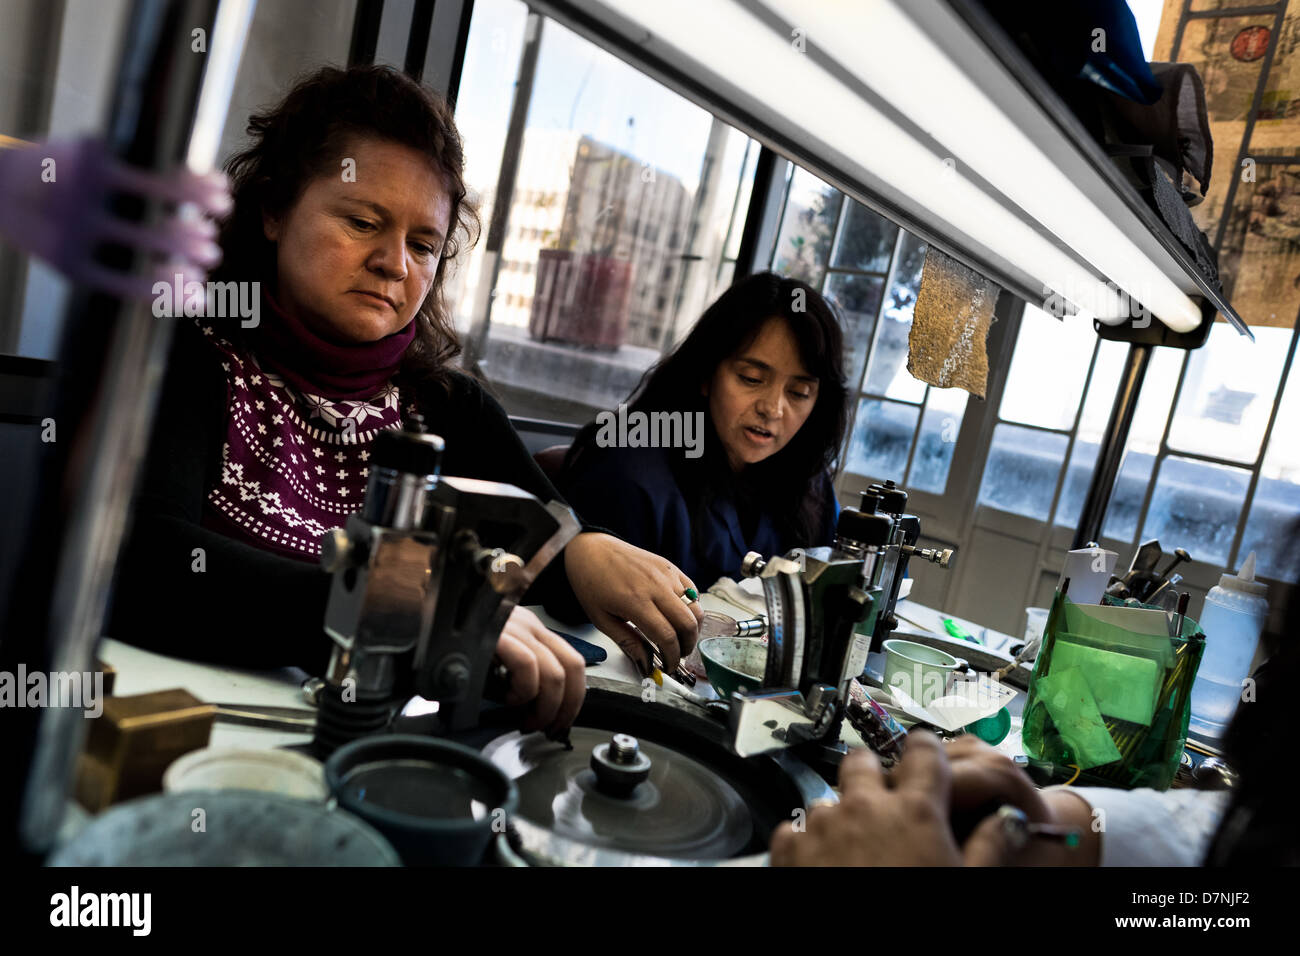 Emerald cutters work in a cutting and polishing workshop in Bogota, Colombia. - Stock Image